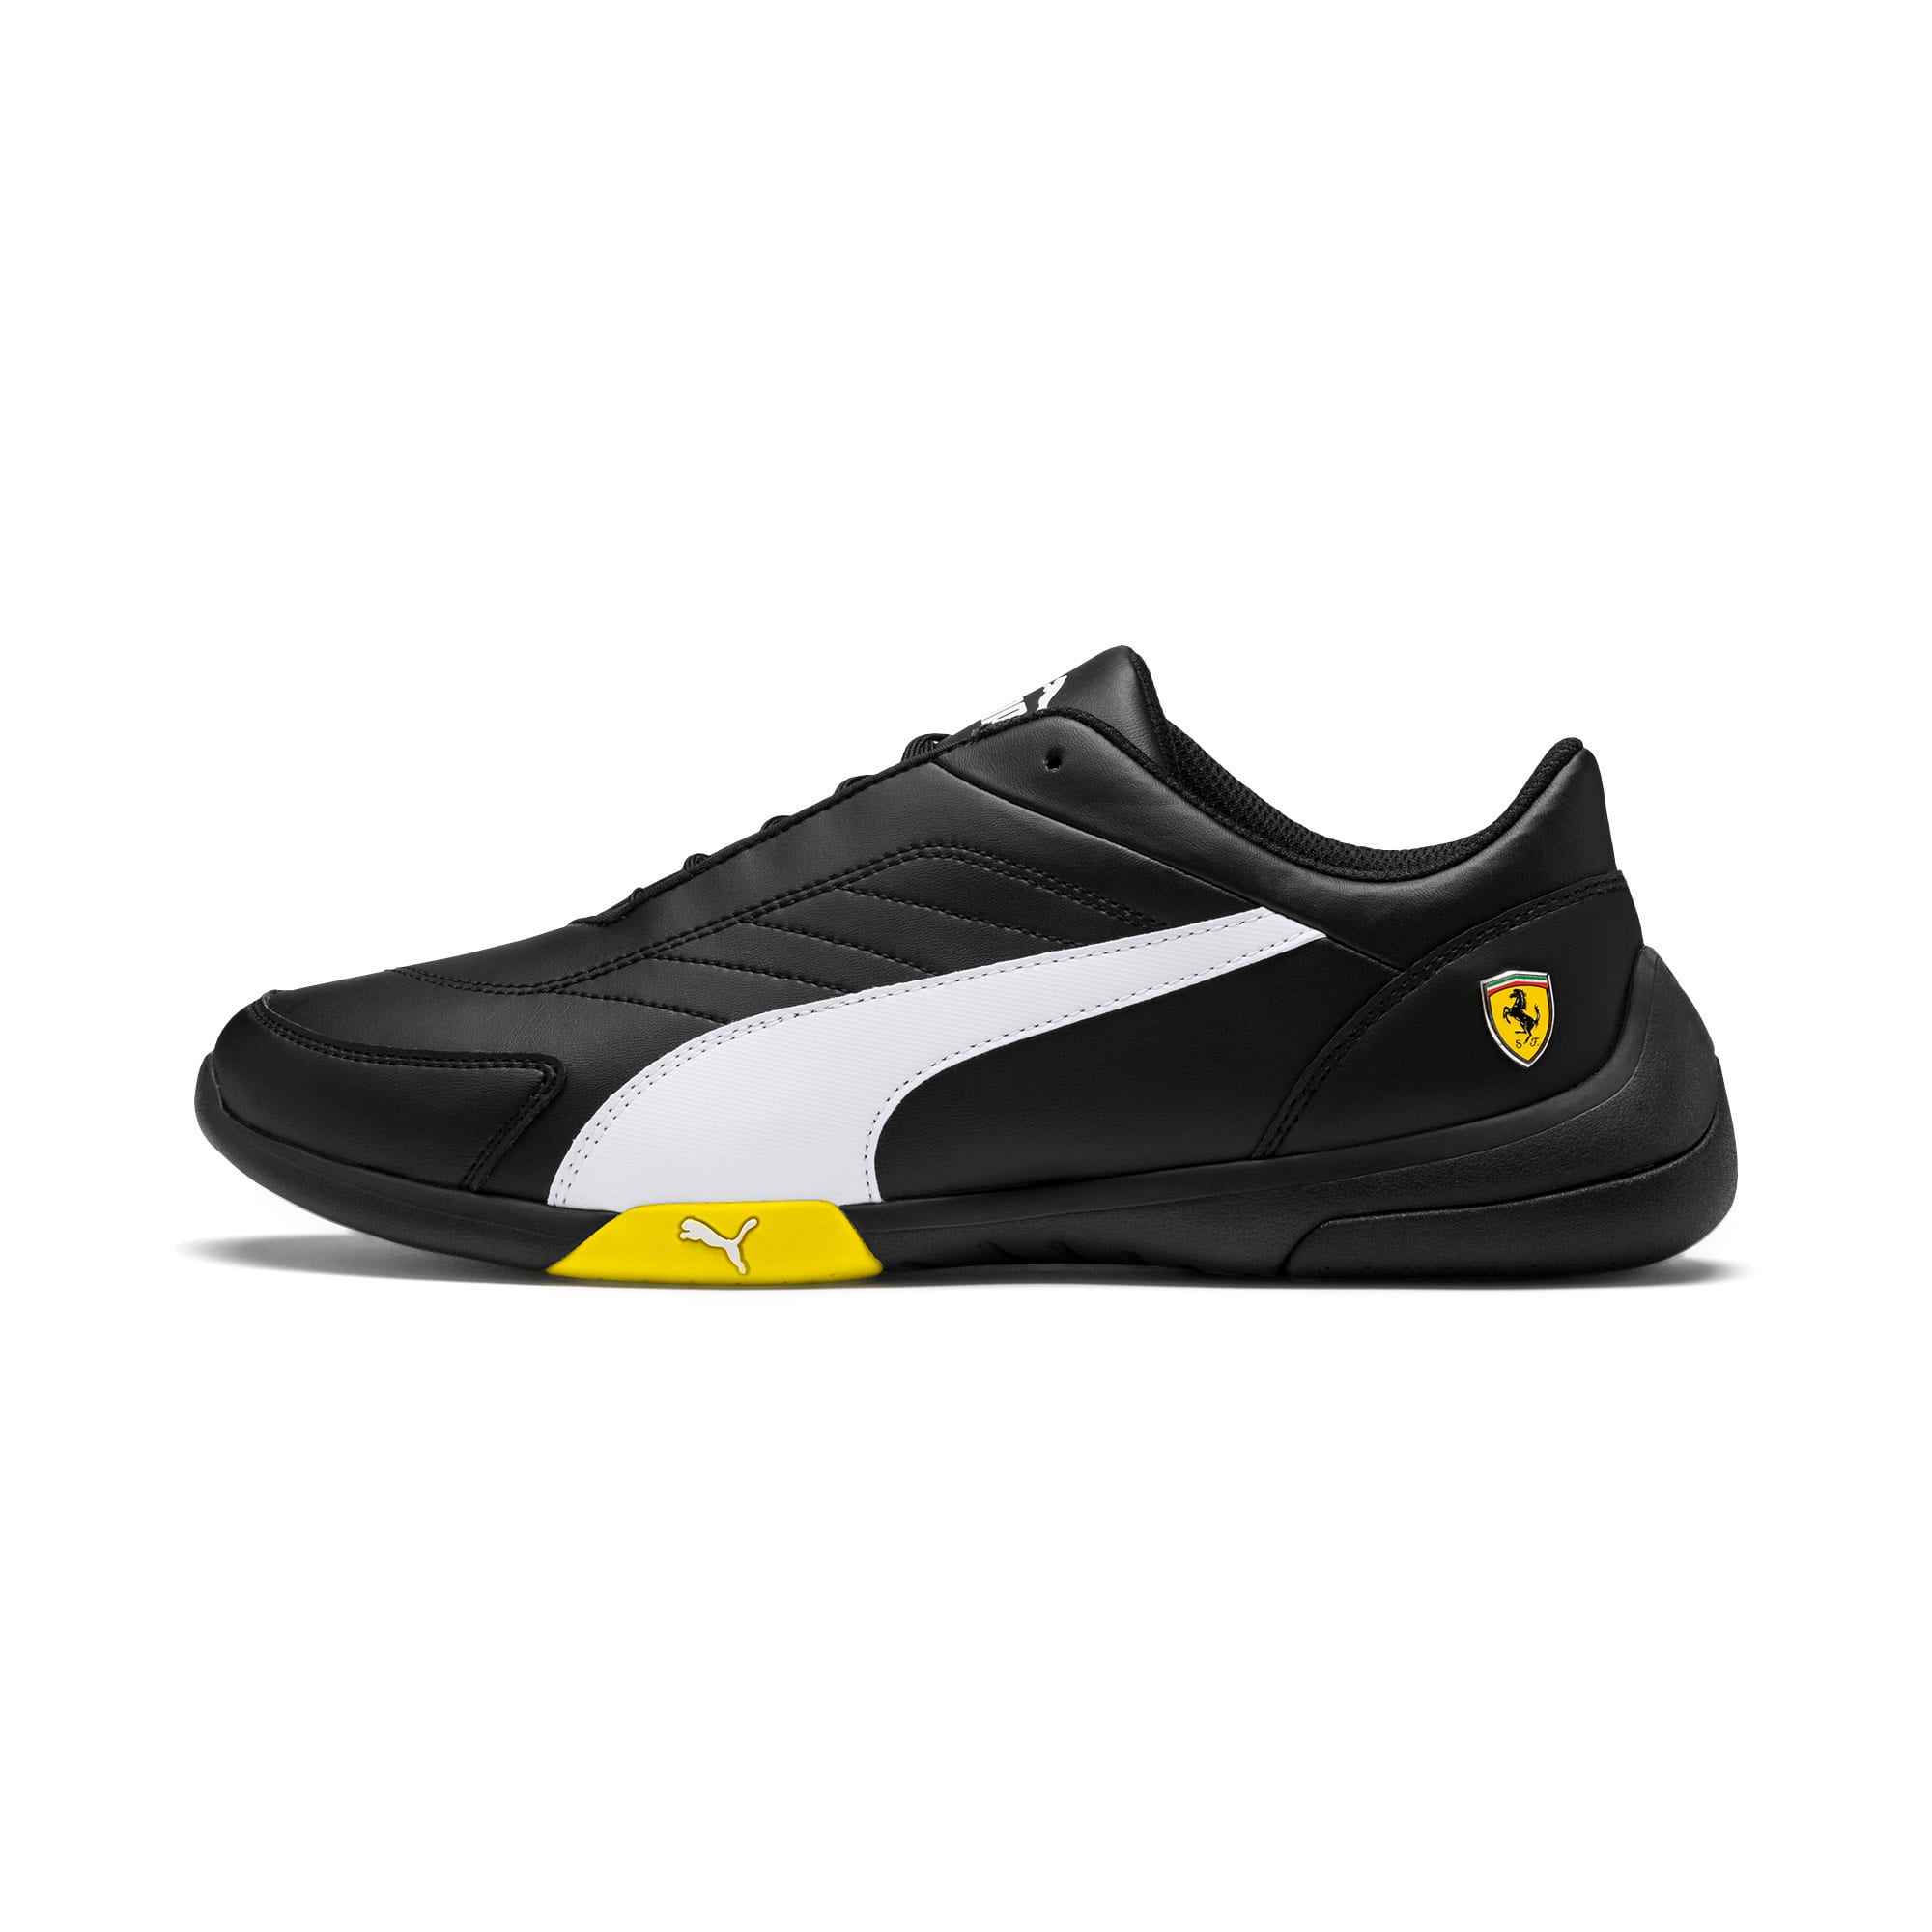 Thumbnail 1 of Ferrari Kart Cat III Sneaker, Black-White-Blazing Yellow, medium